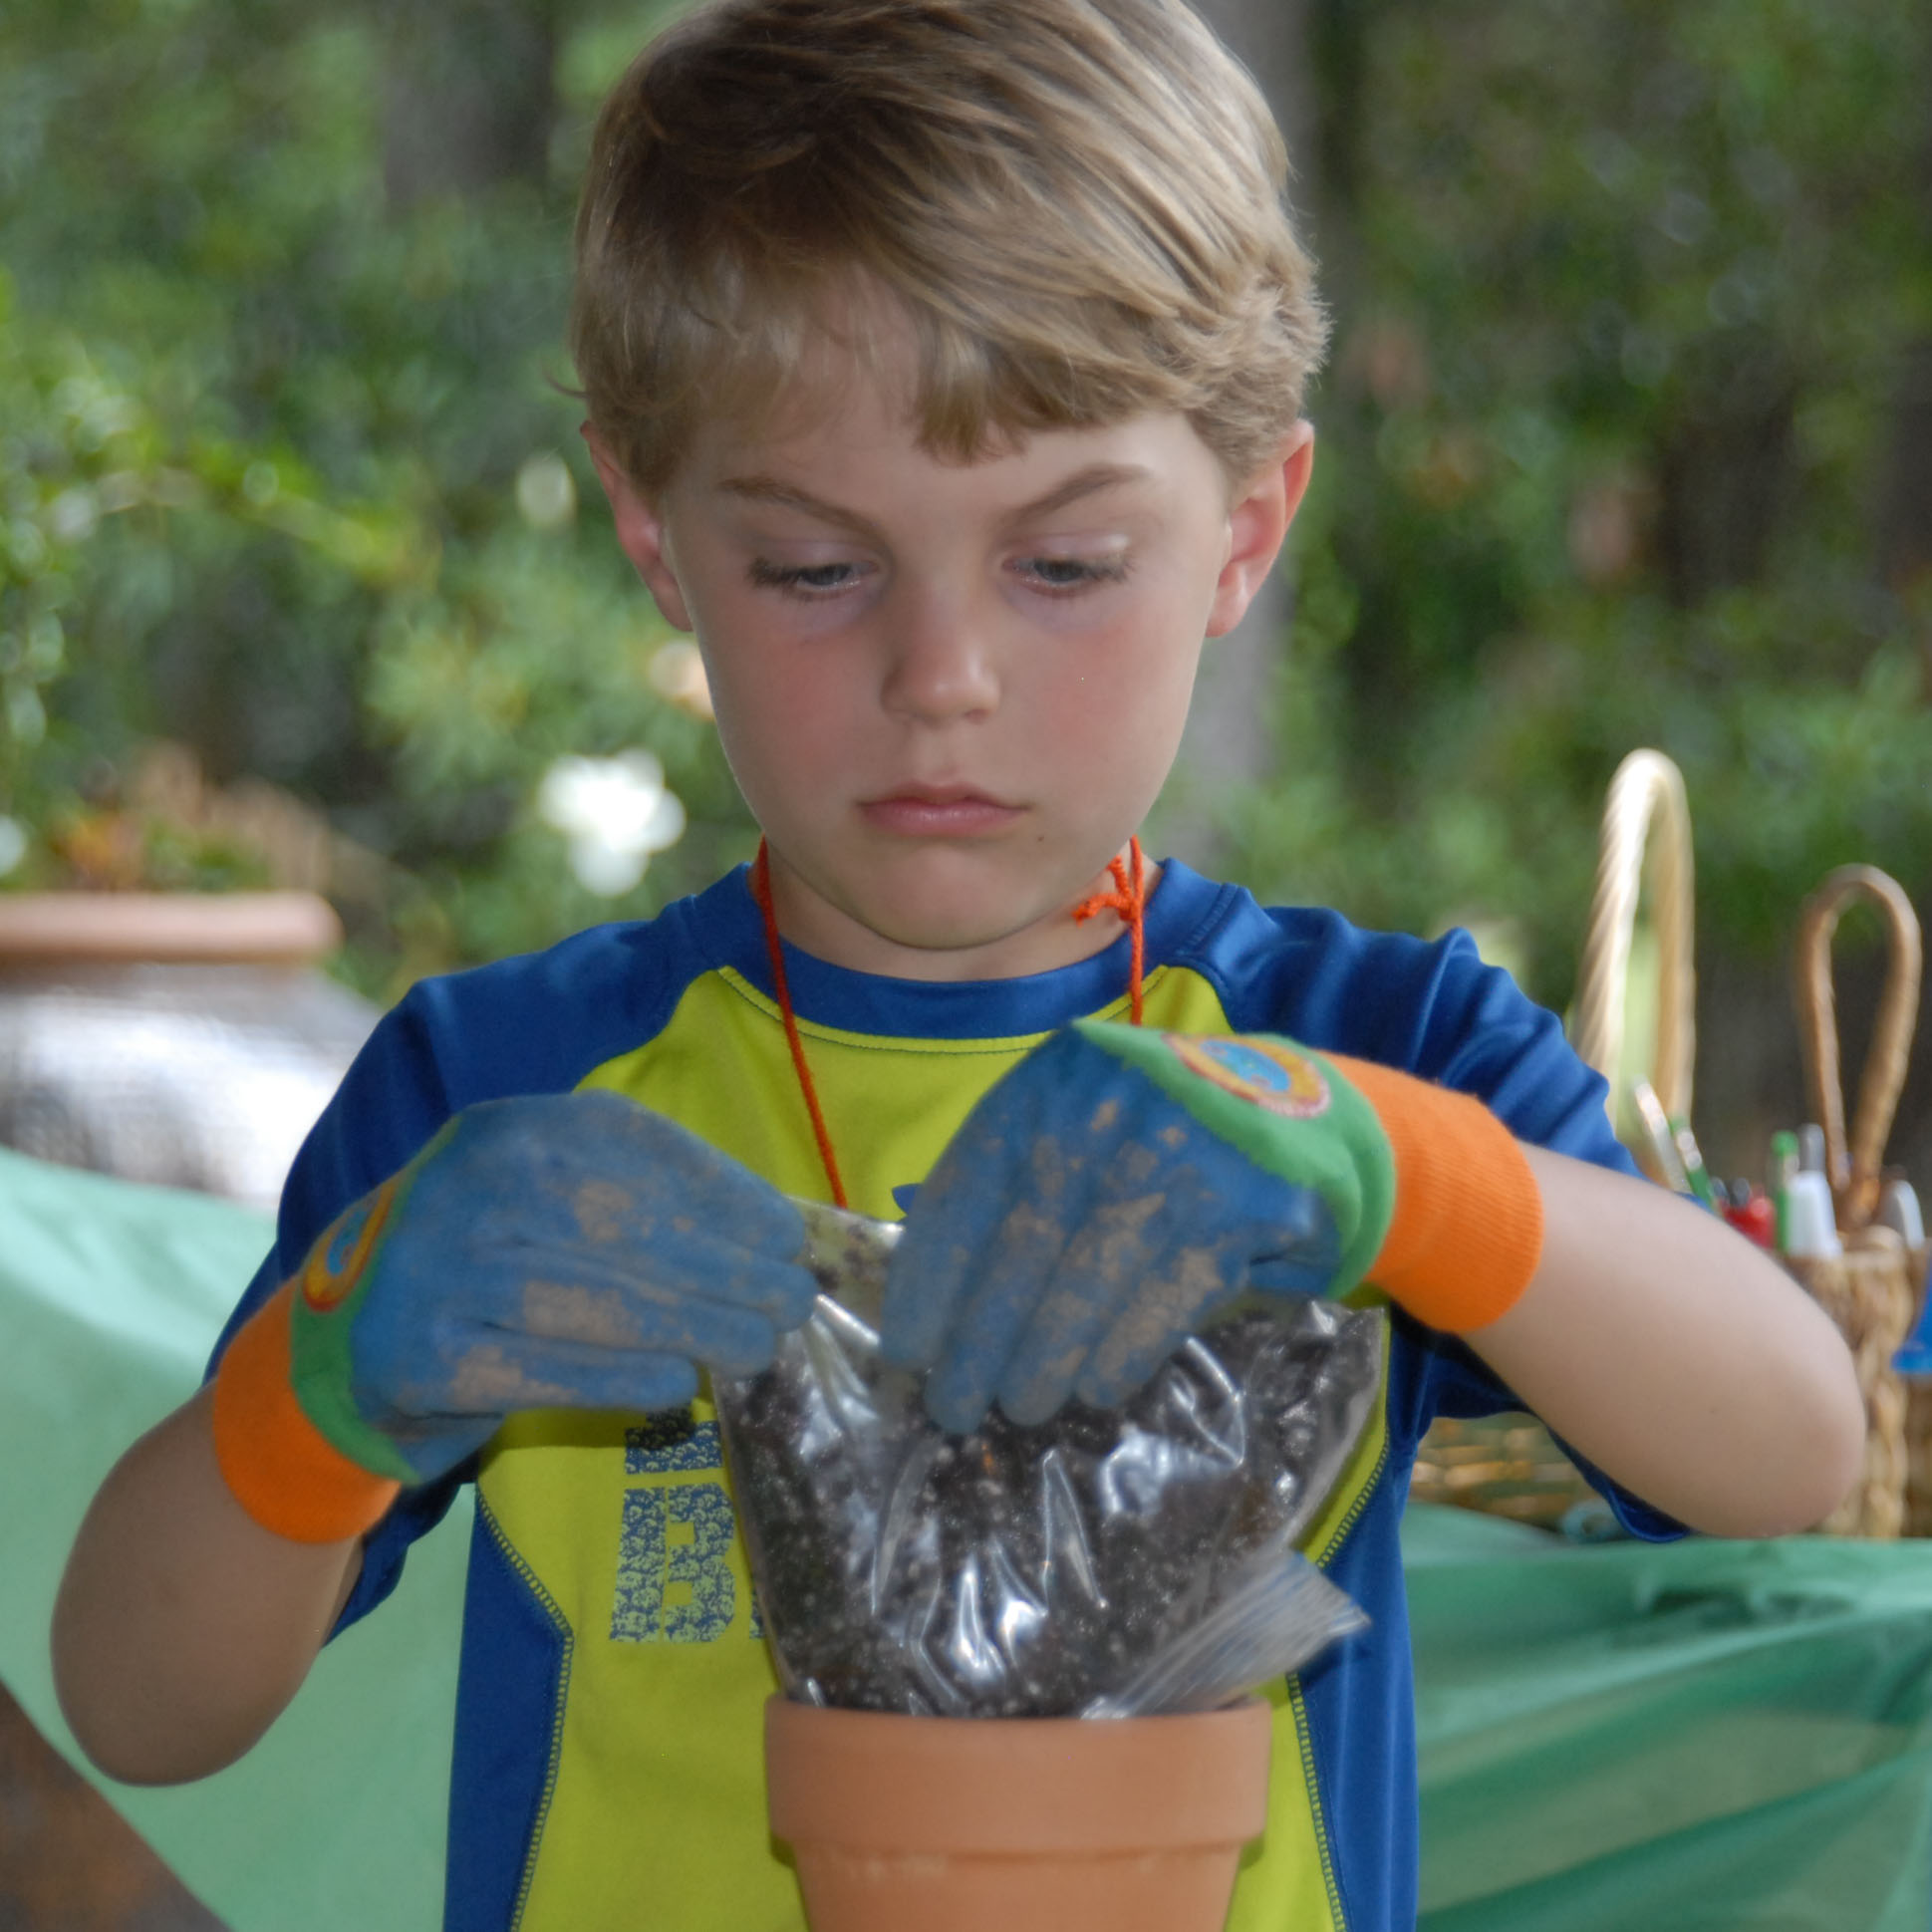 blond boy with clay pot.jpg thumbnail